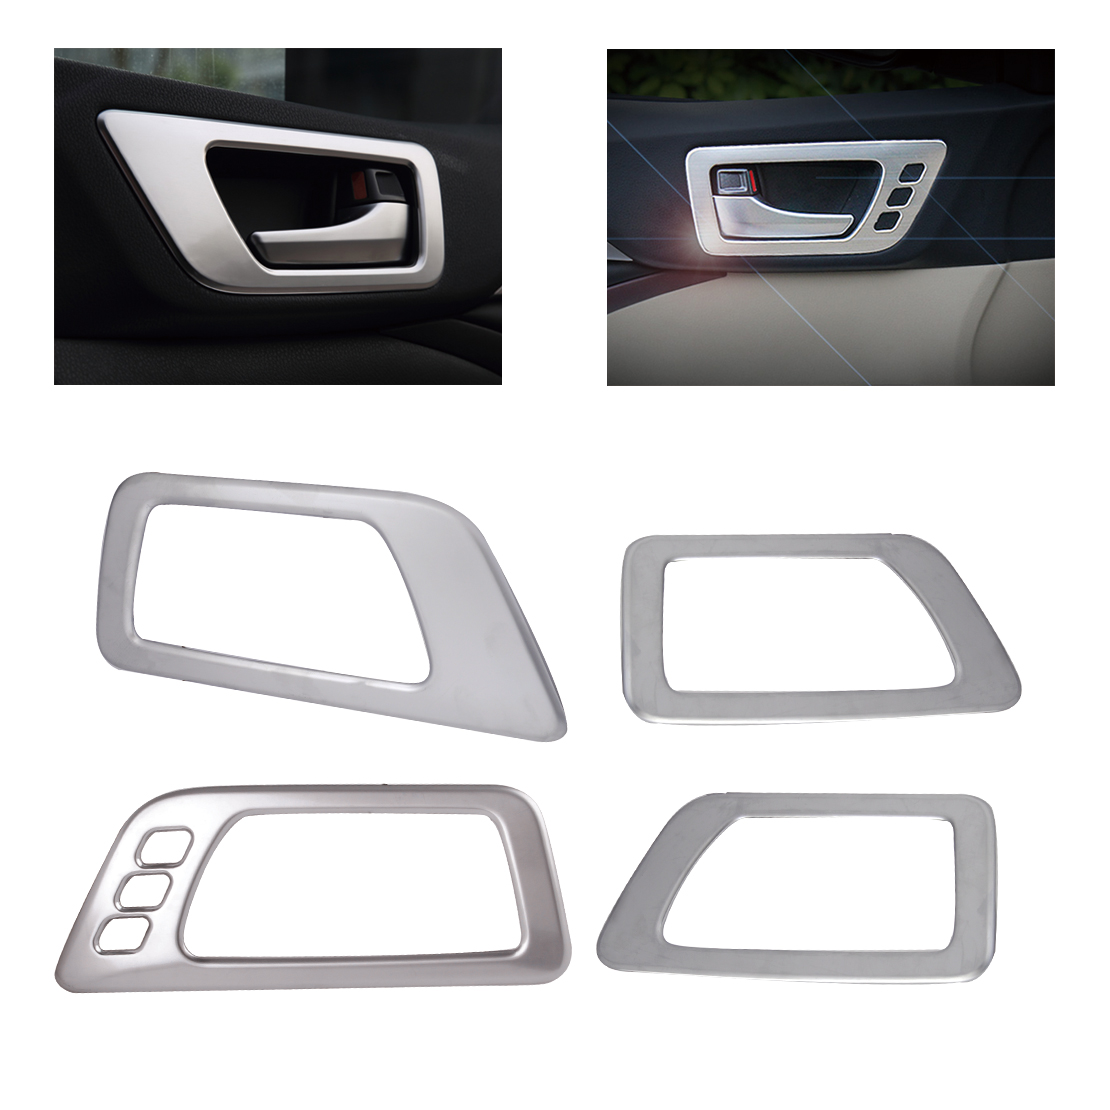 CITALL Car-styling 4pcs Interior ABS Matte Chrome Door Handle Bowl Cover Trim For Toyota Highlander Kluger 2014 2015 2016 2017